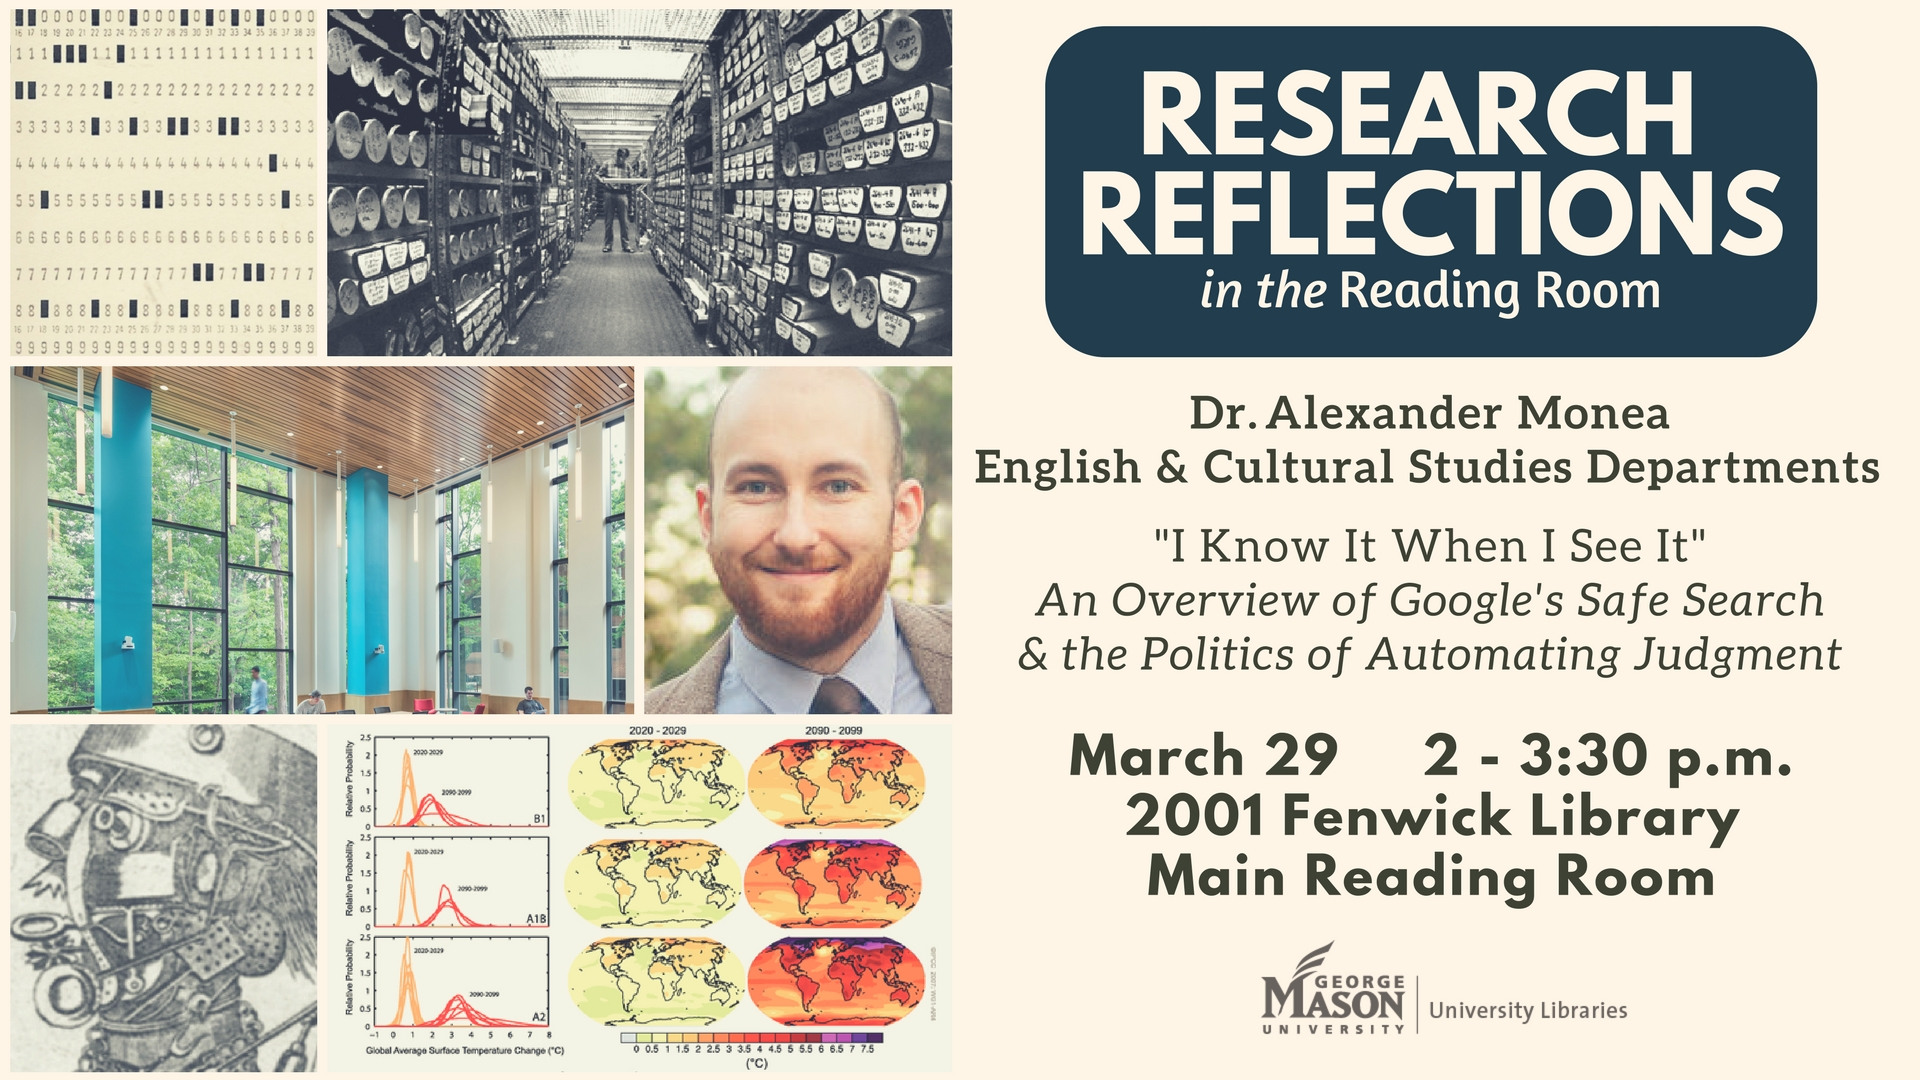 Research Reflections: Dr. Alexander Monea